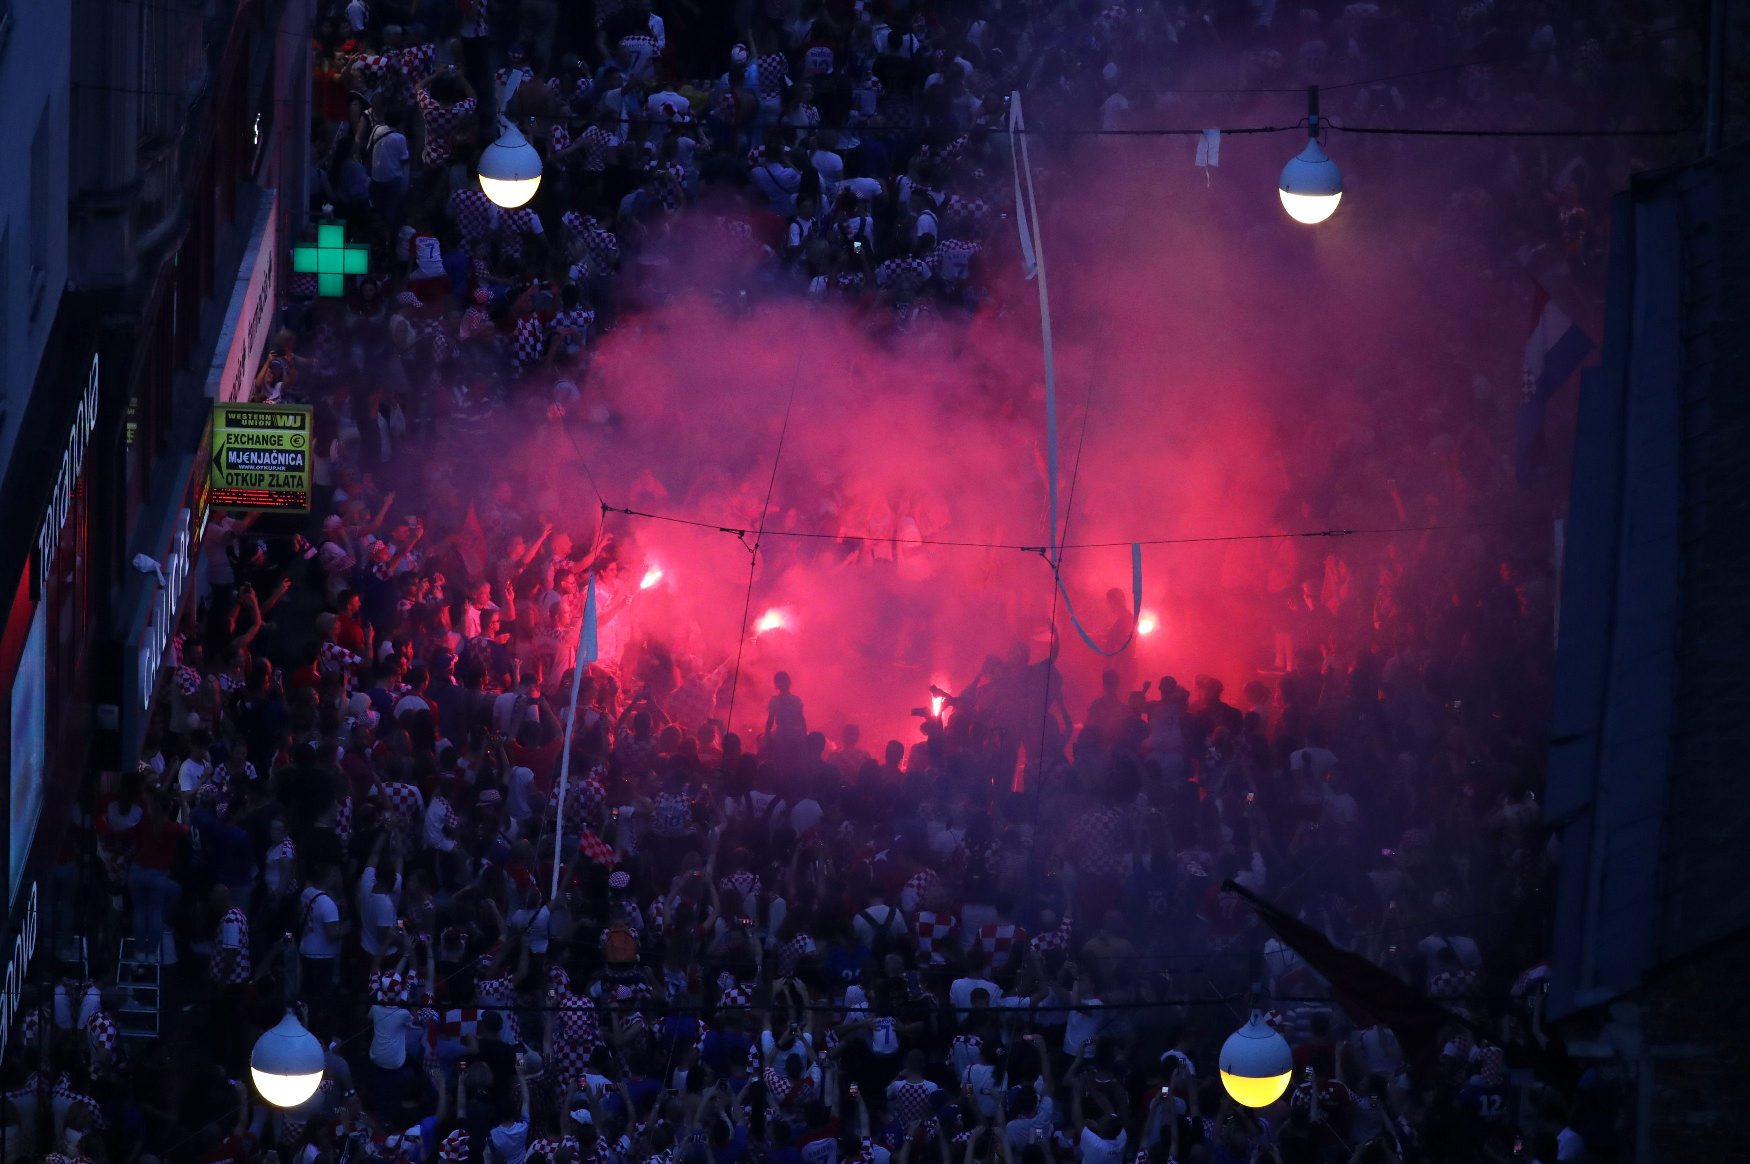 Soccer Football - World Cup - The Croatia team return from the World Cup in Russia - Zagreb, Croatia - July 16, 2018   Croatia fans with flares   REUTERS/Marko Djurica